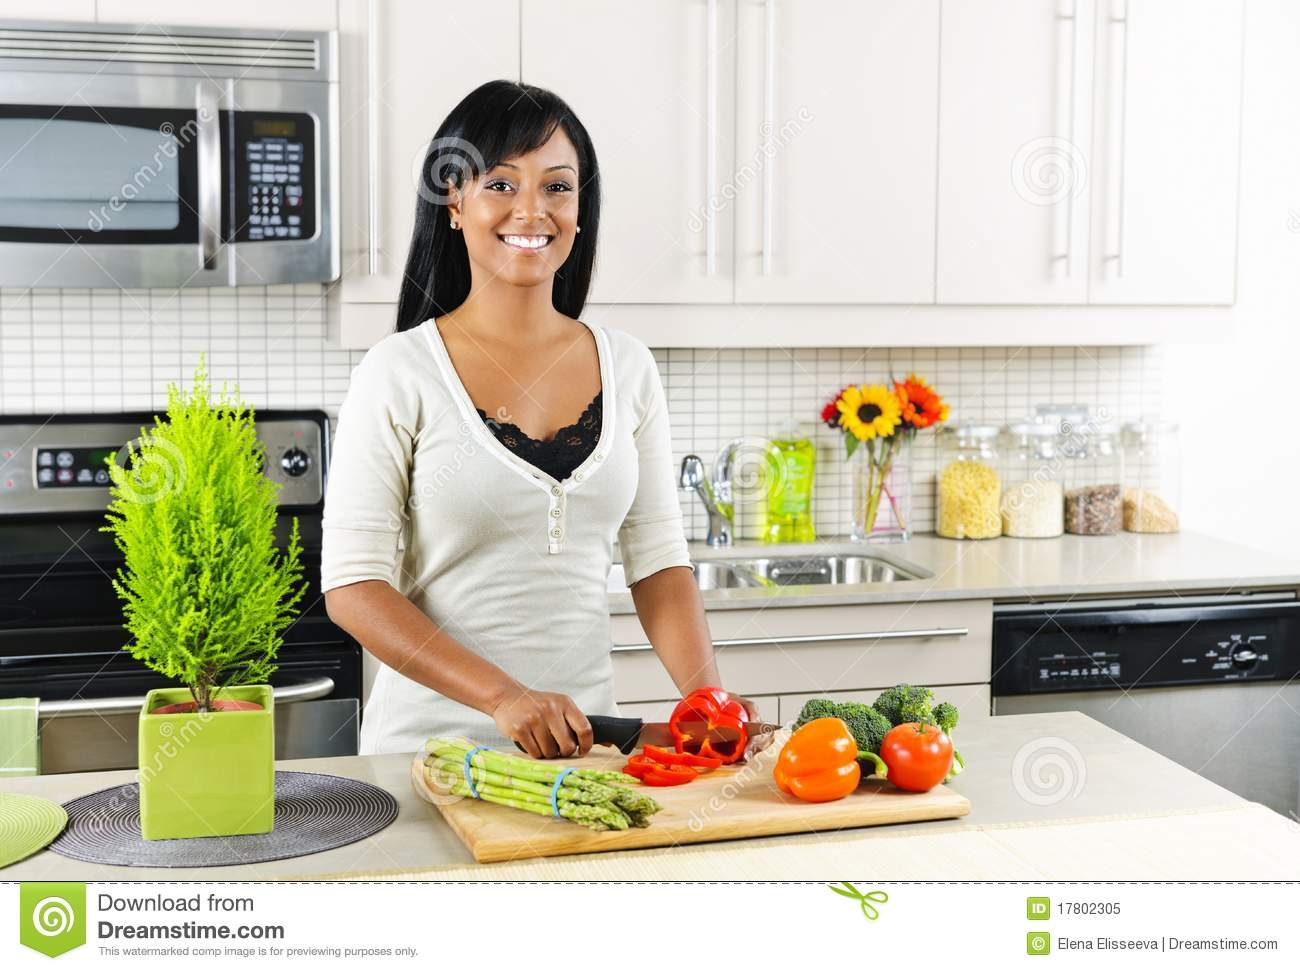 in kitchen - Decco.voiceoverservices.co